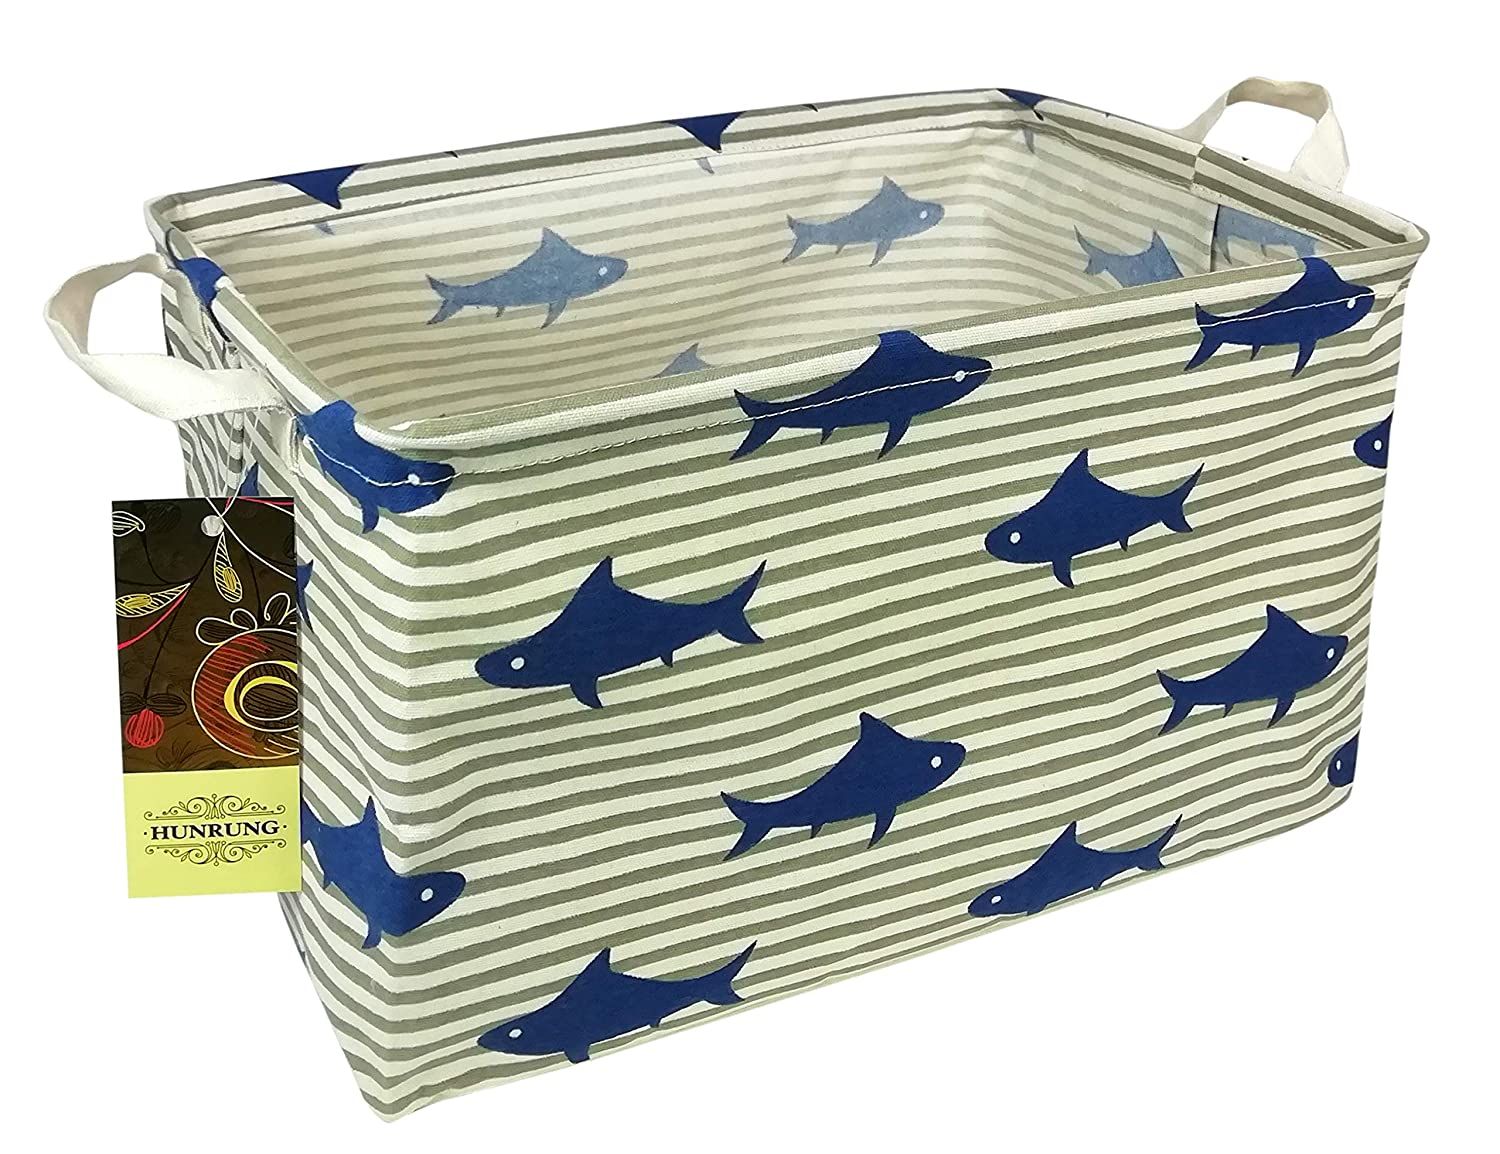 HUNRUNG Rectangle Storage Basket Cute for Pet/Kids Toys, Books, Clothes - Perfect for Kid Rooms/Playroom/Shelves (Shark)